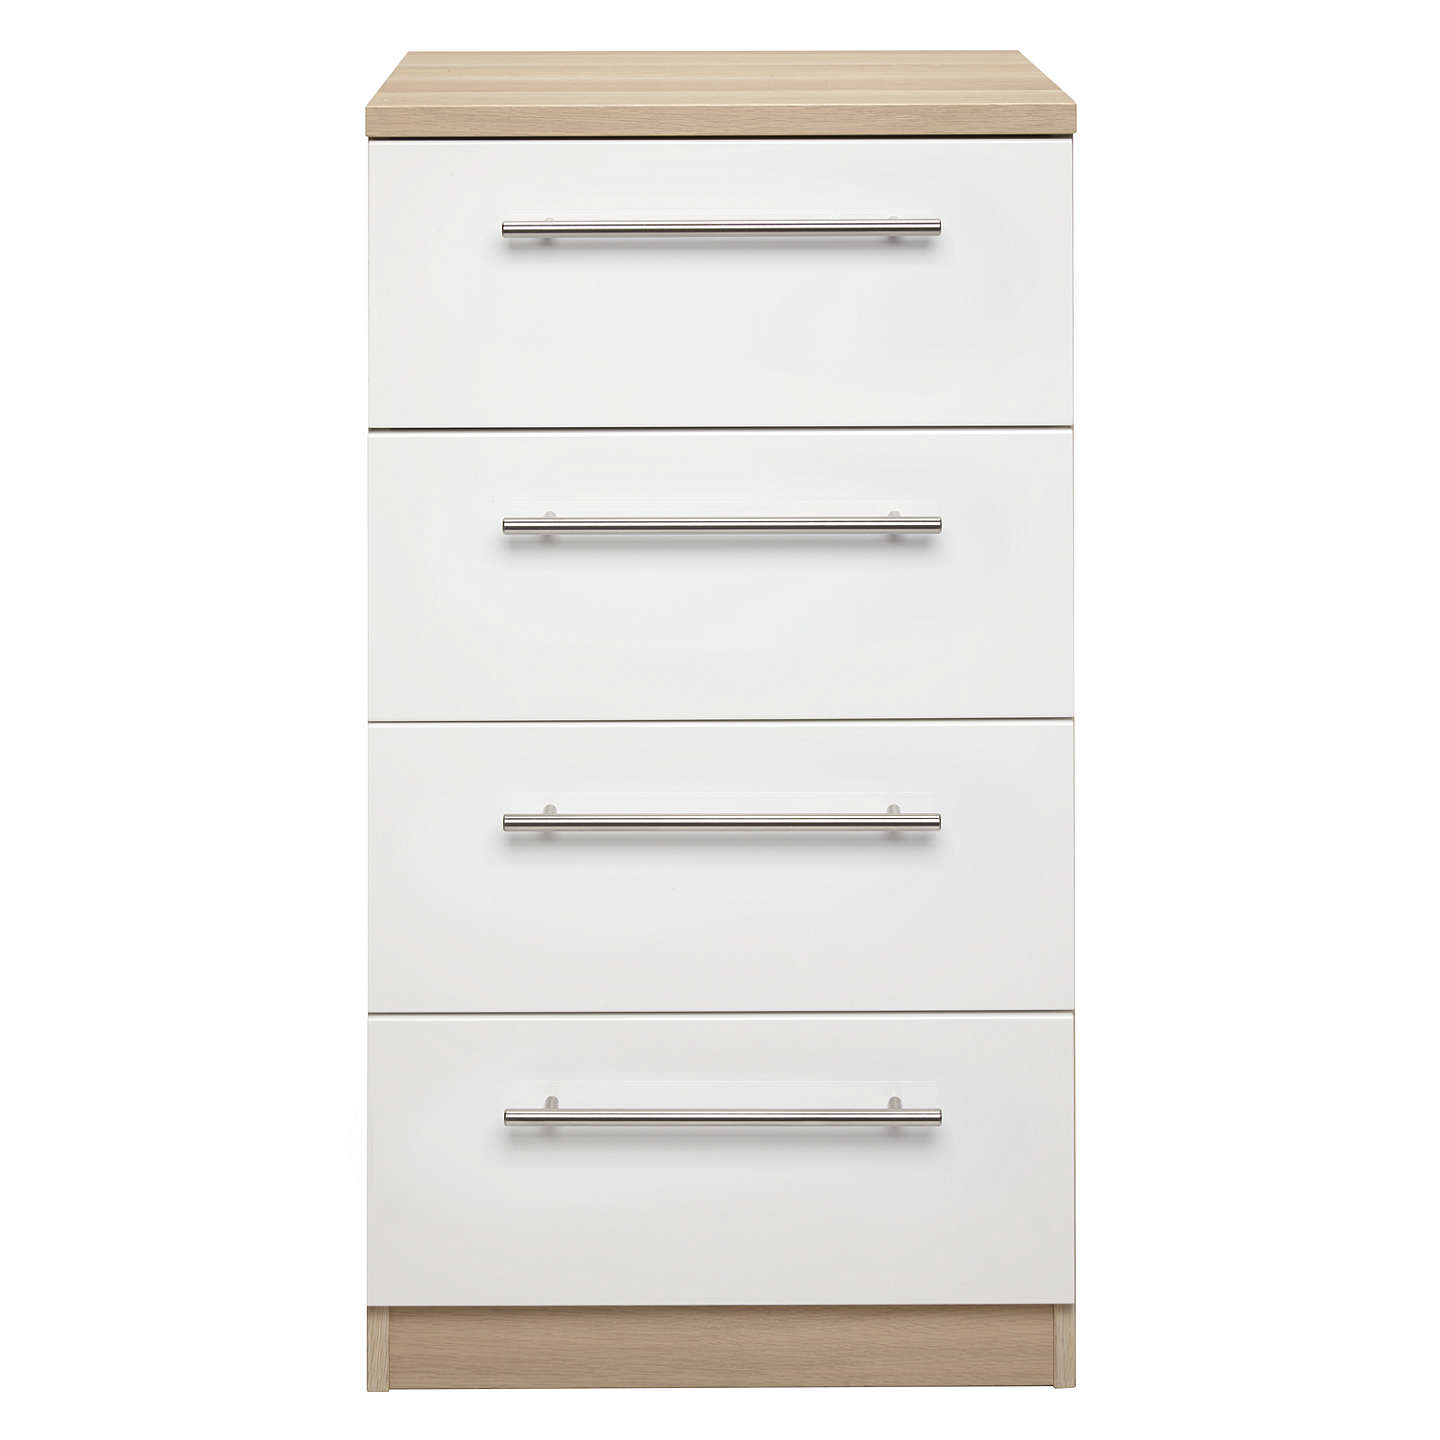 BuyHouse by John Lewis Mix it T-Bar Handle Narrow 4 Drawer Chest, Gloss White/Natural Oak Online at johnlewis.com